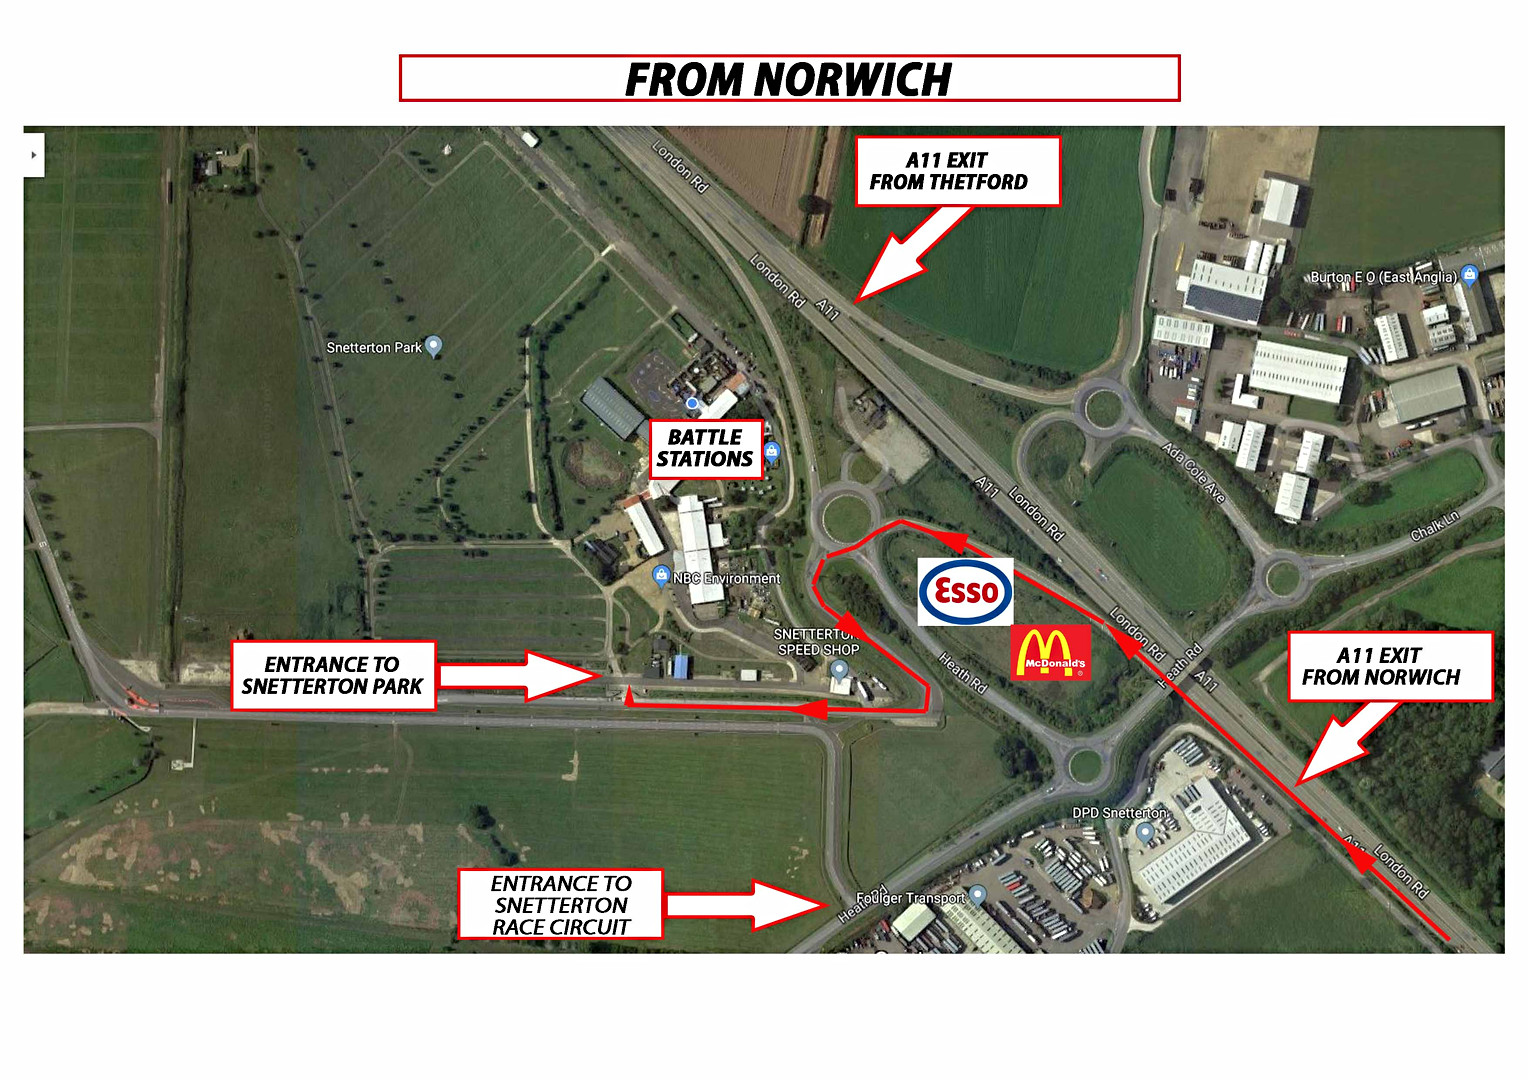 DIRECTIONS FROM NORWICH 20.jpg